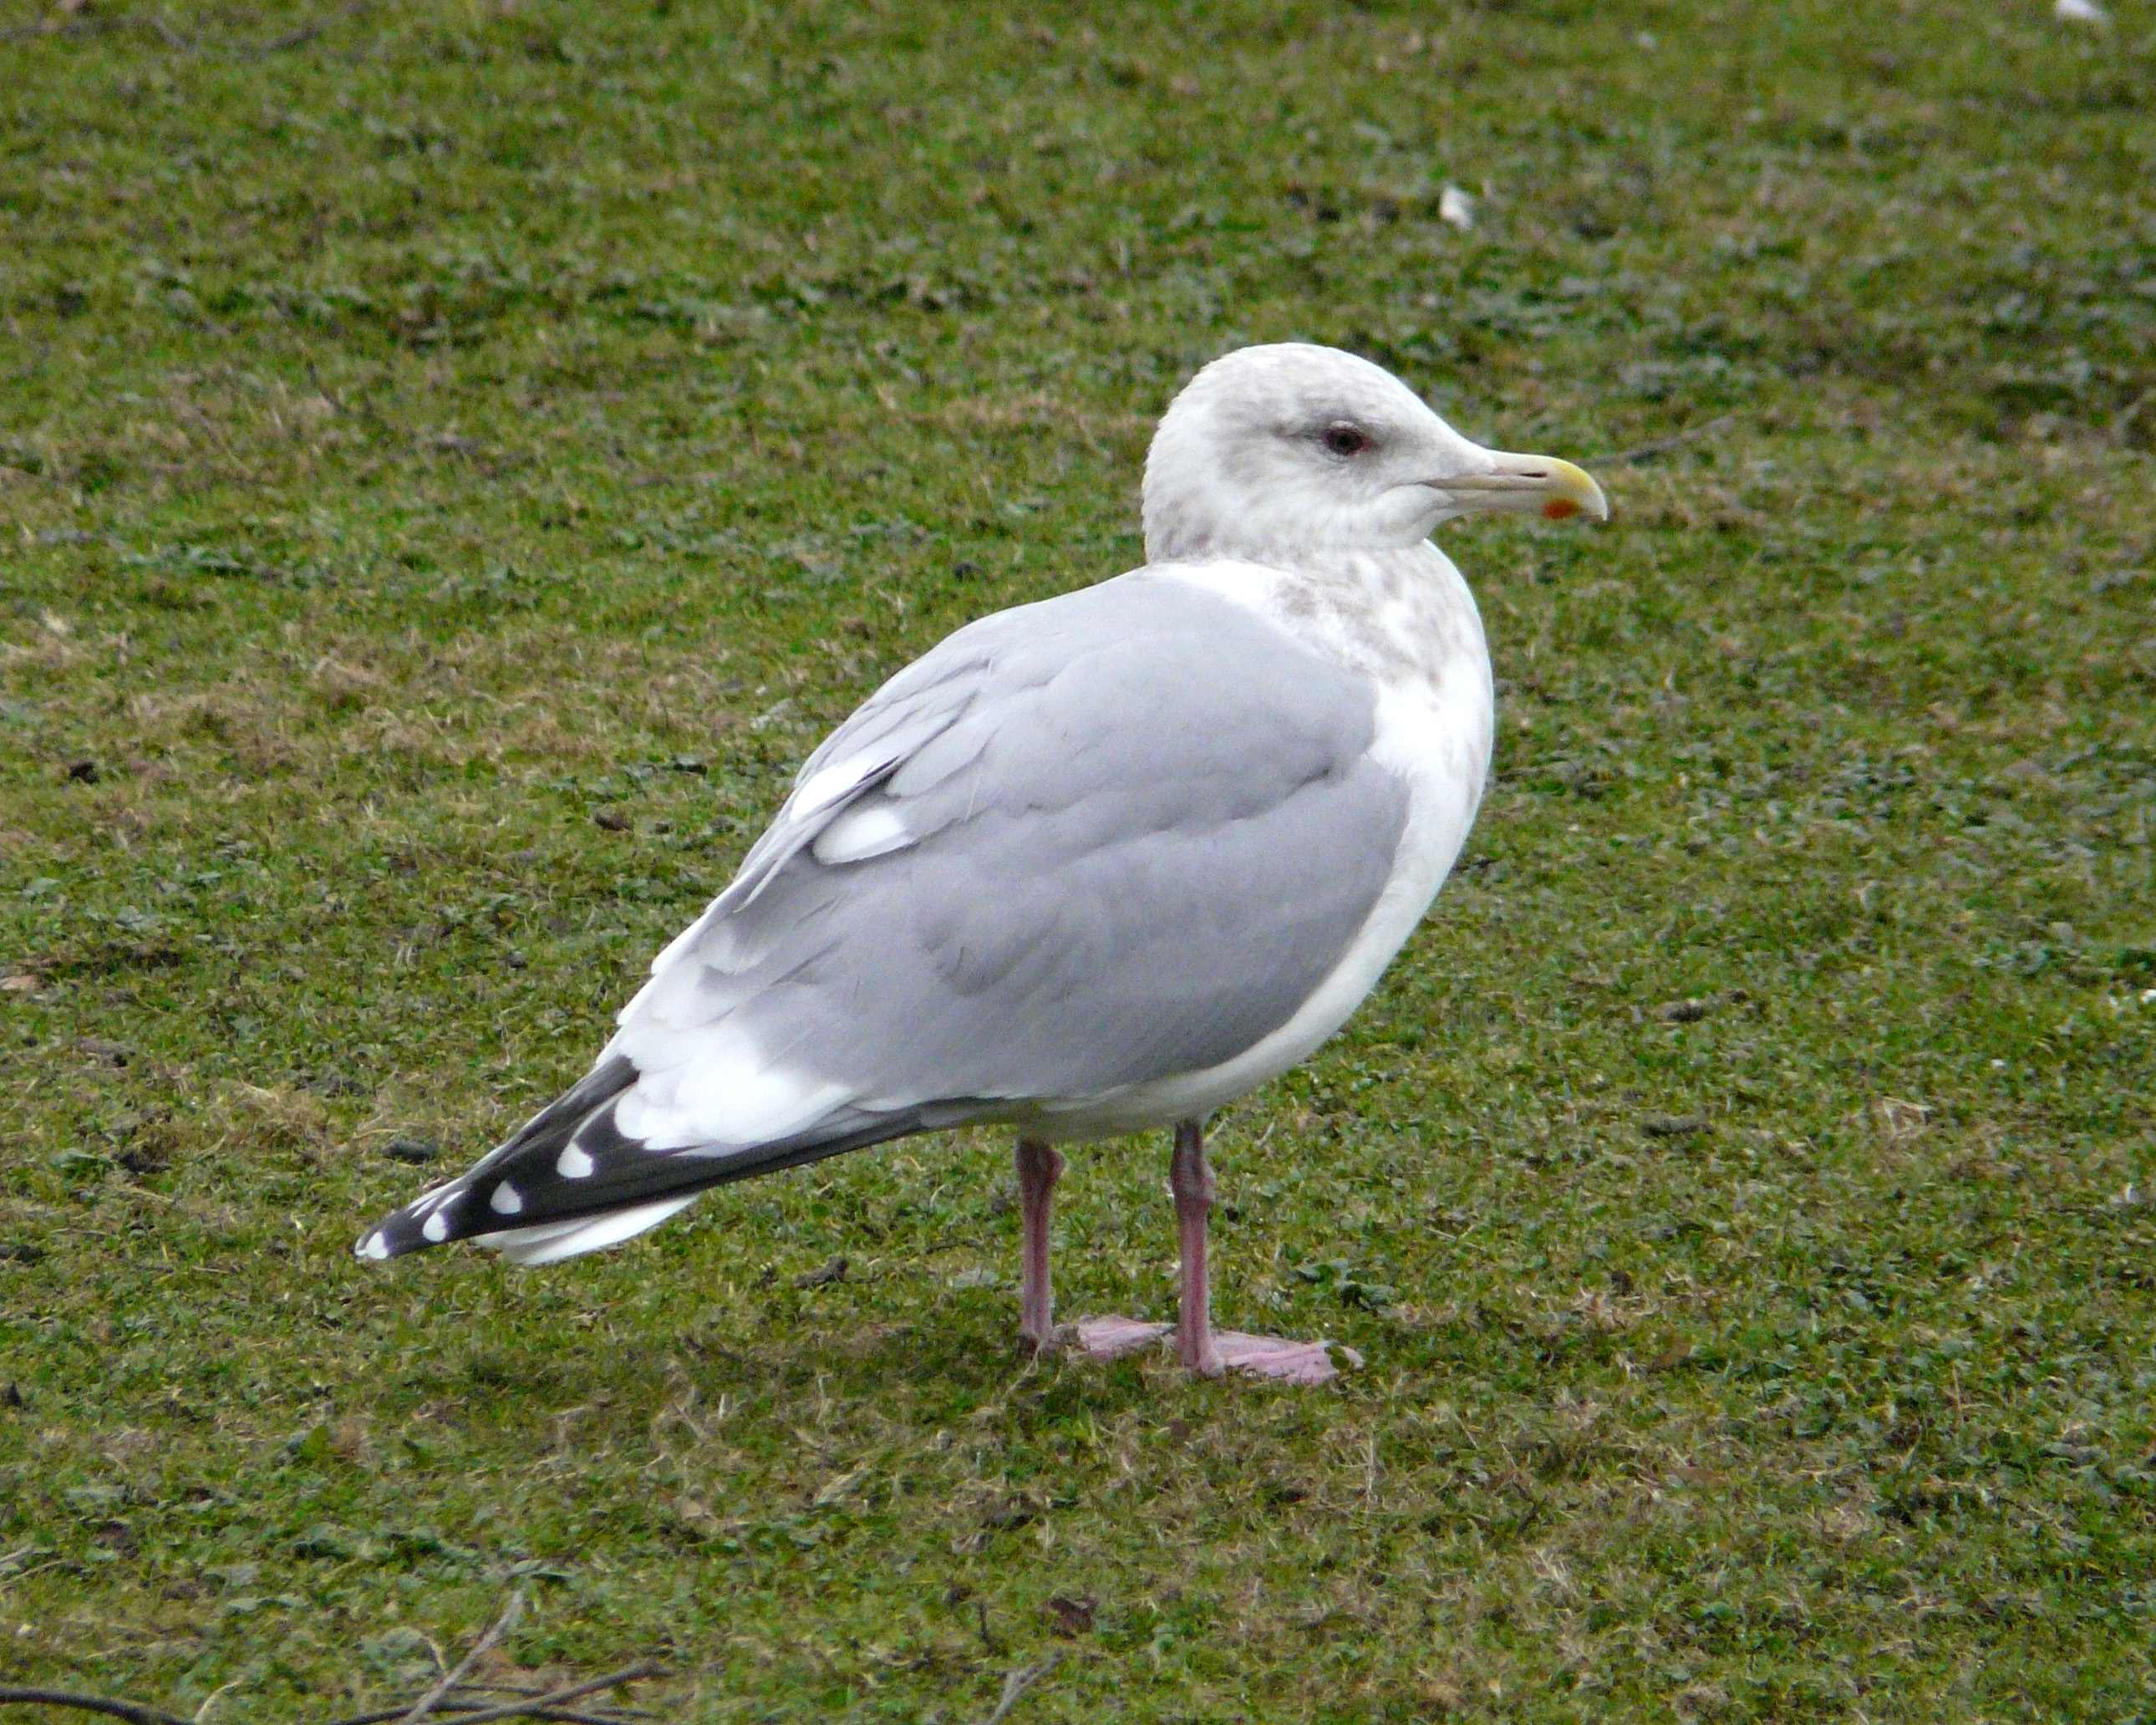 UK400ClubRareBirdAlert: A typical juvenile THAYER'S GULL |Thayers Gull